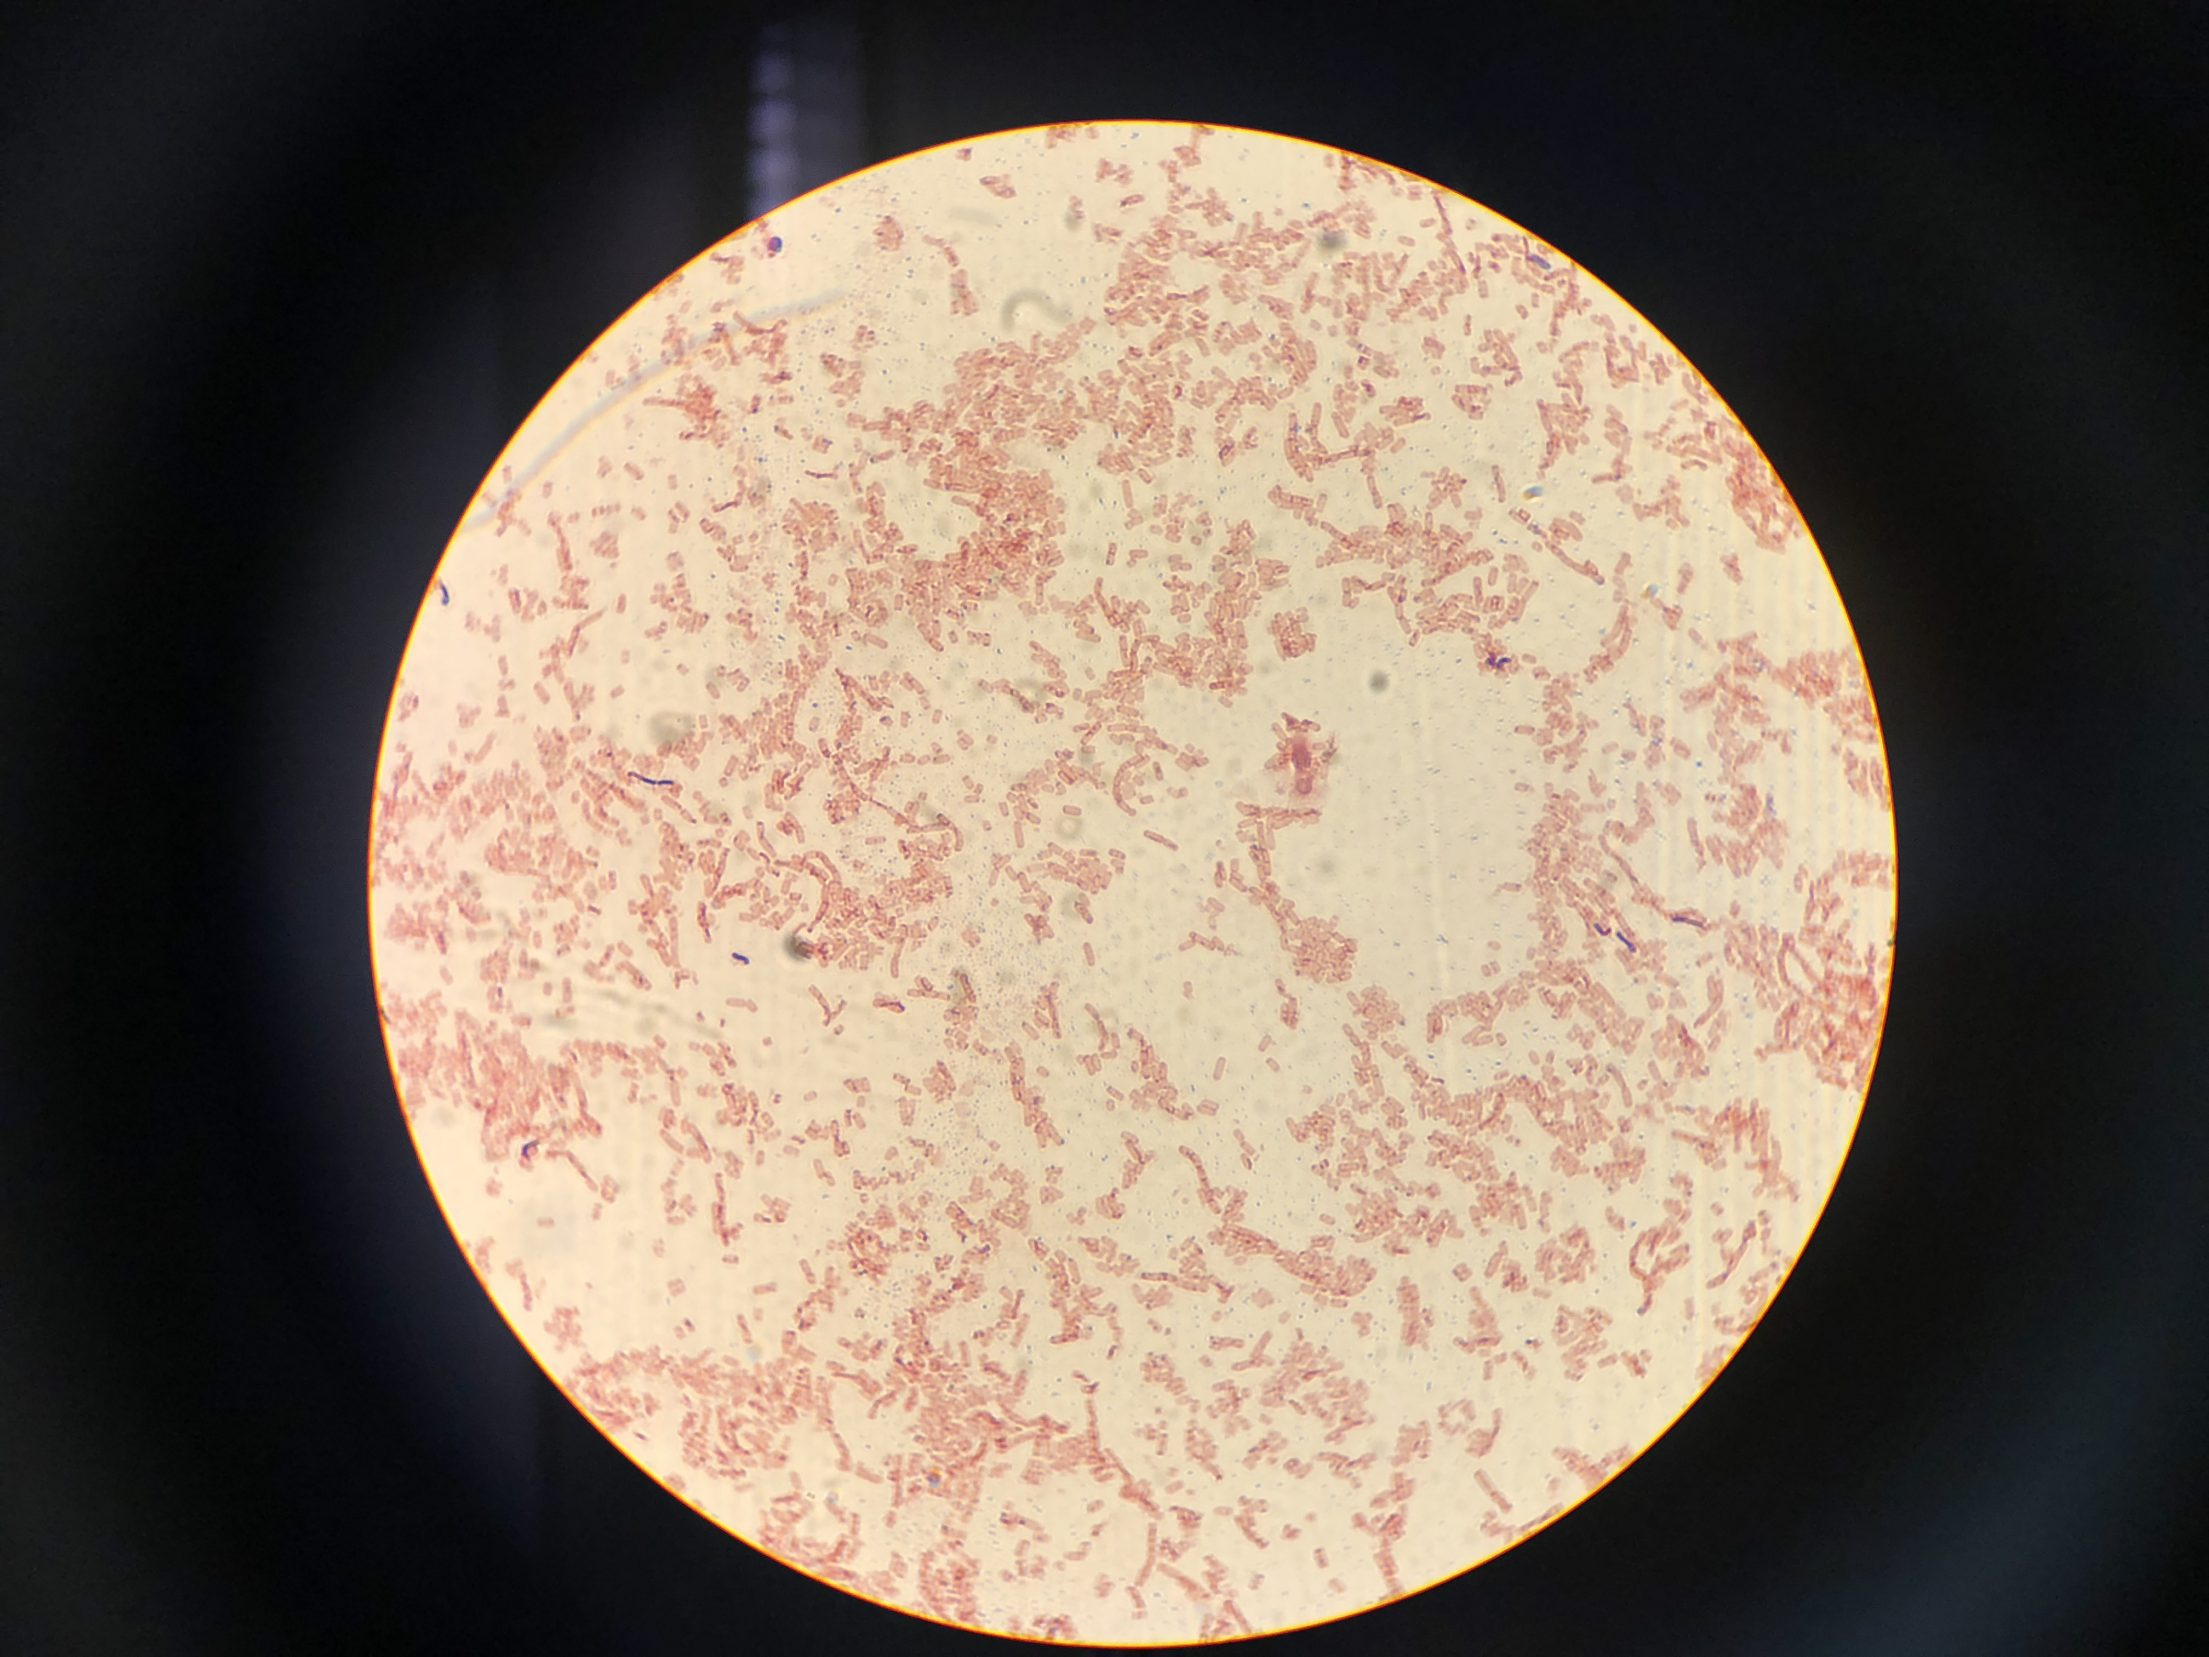 How to gram stain